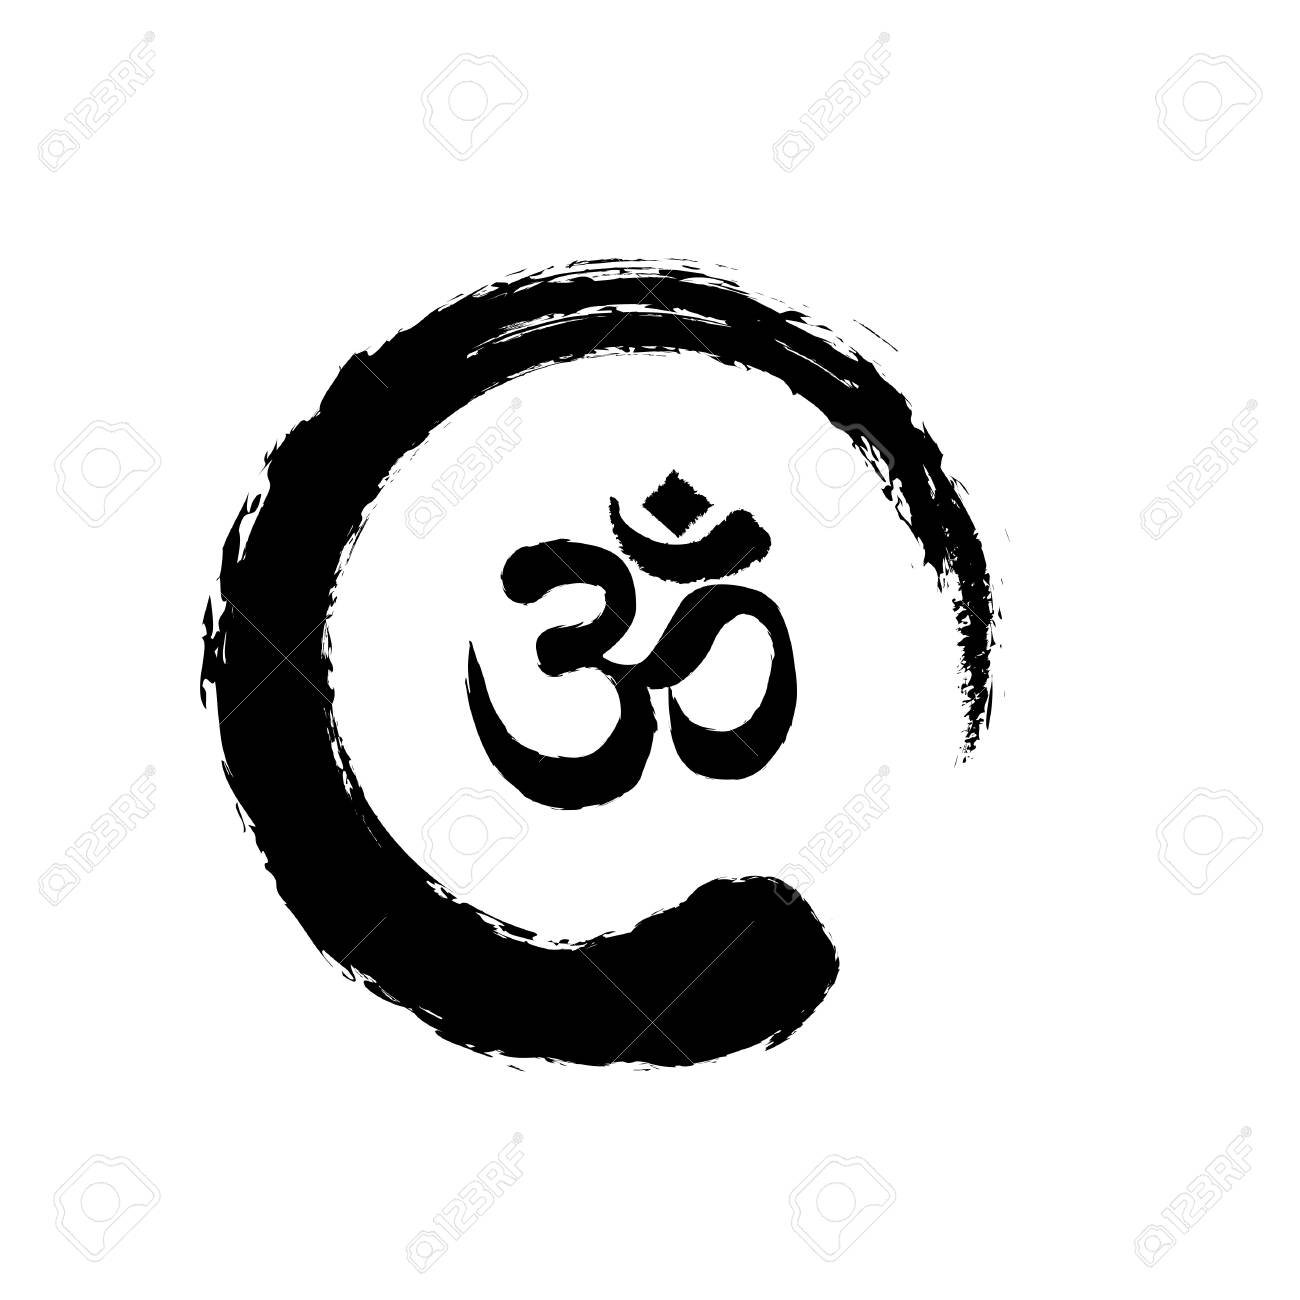 Zen And Om Symbol Icon Design Royalty Free Cliparts Vectors And Stock Illustration Image 120074266